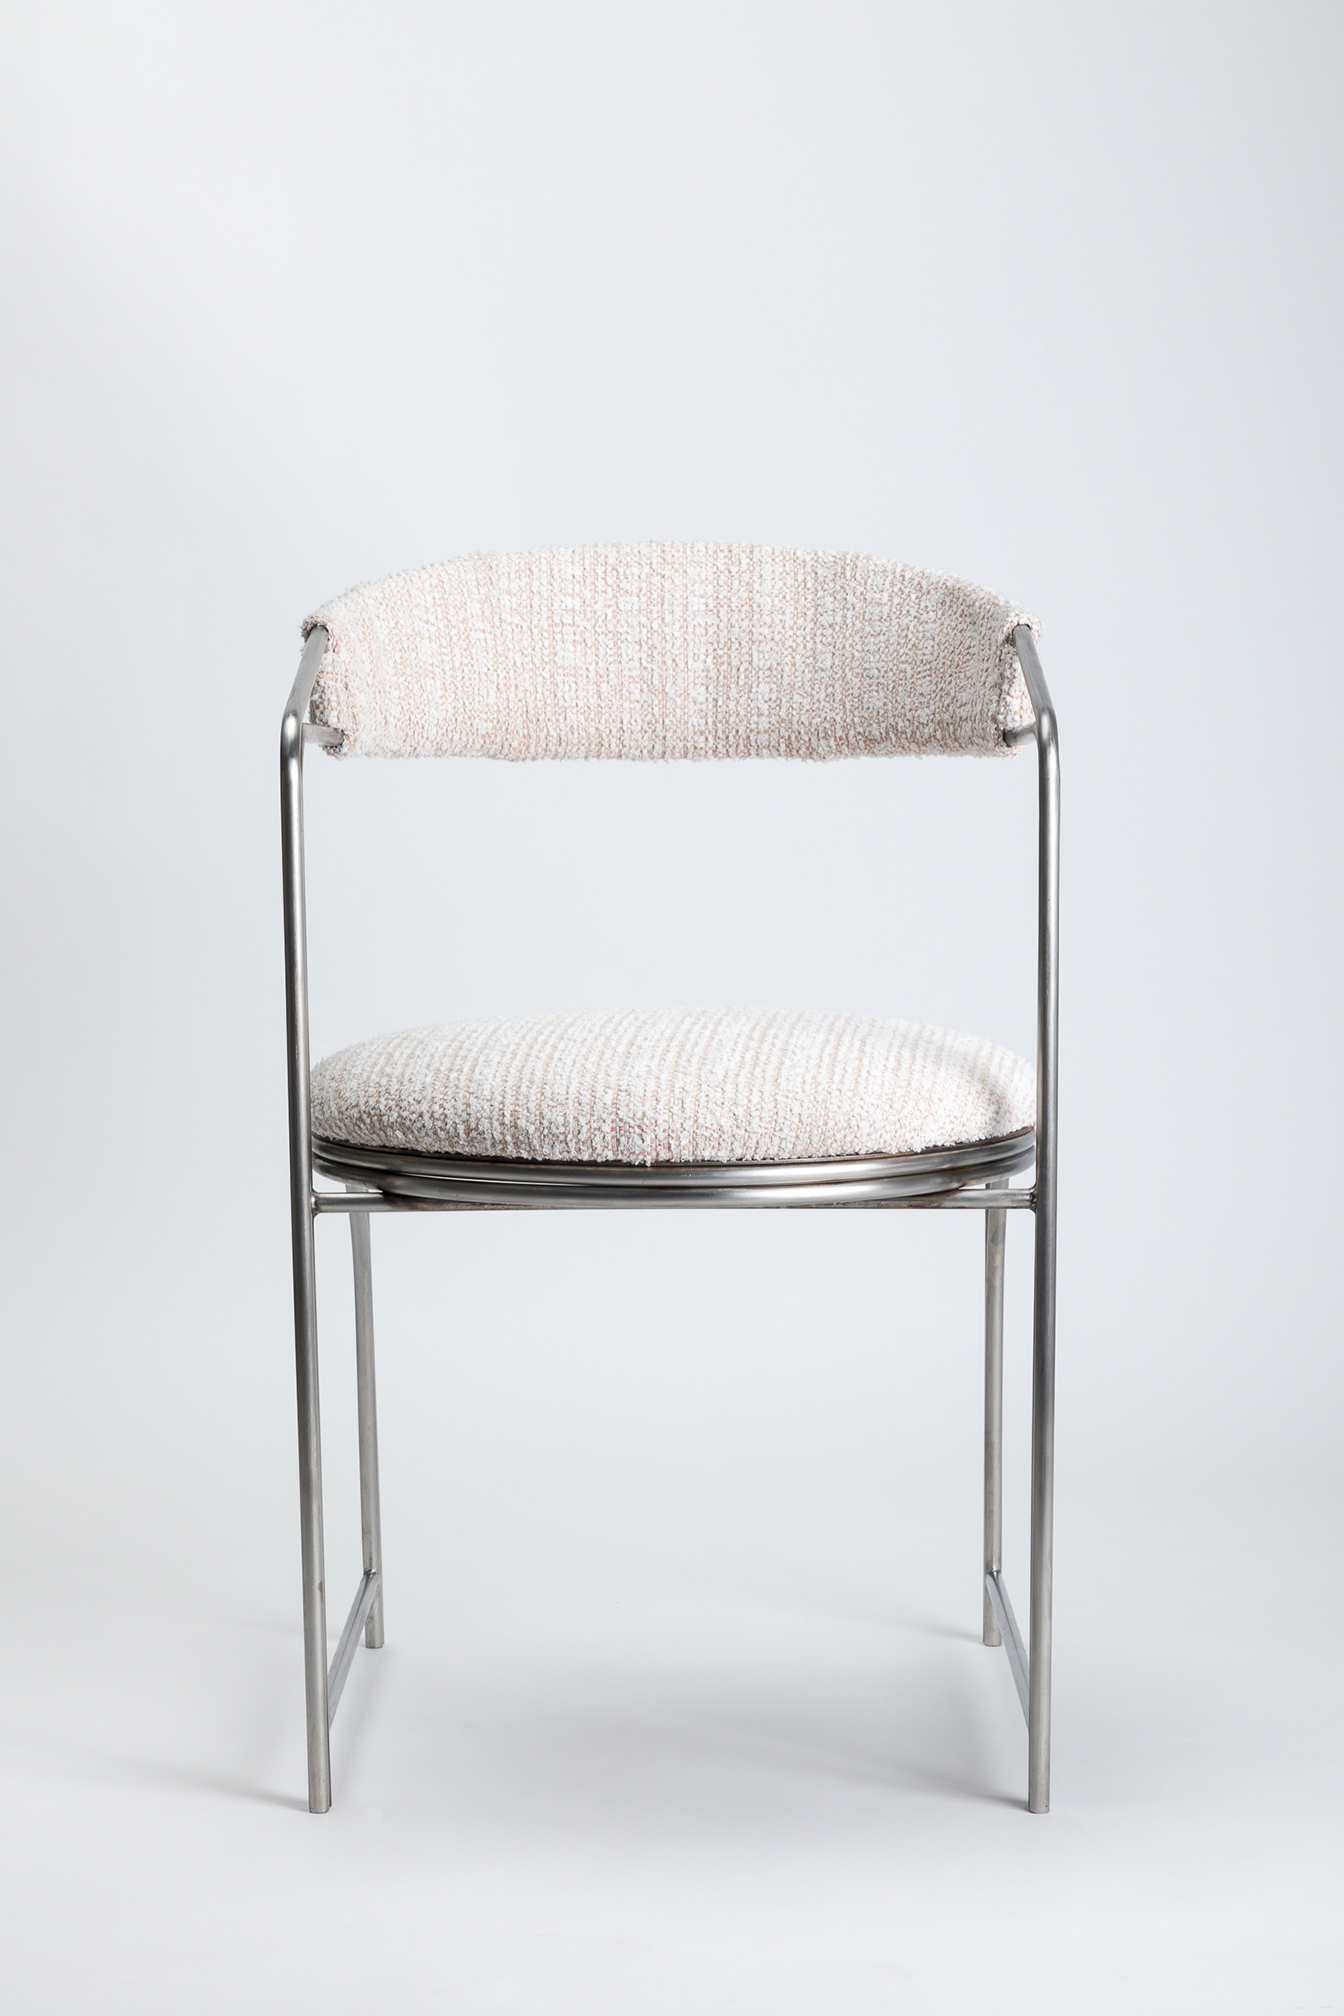 LAUN - Bacall Chair Pink 001_photo credit Little League Studio.jpg